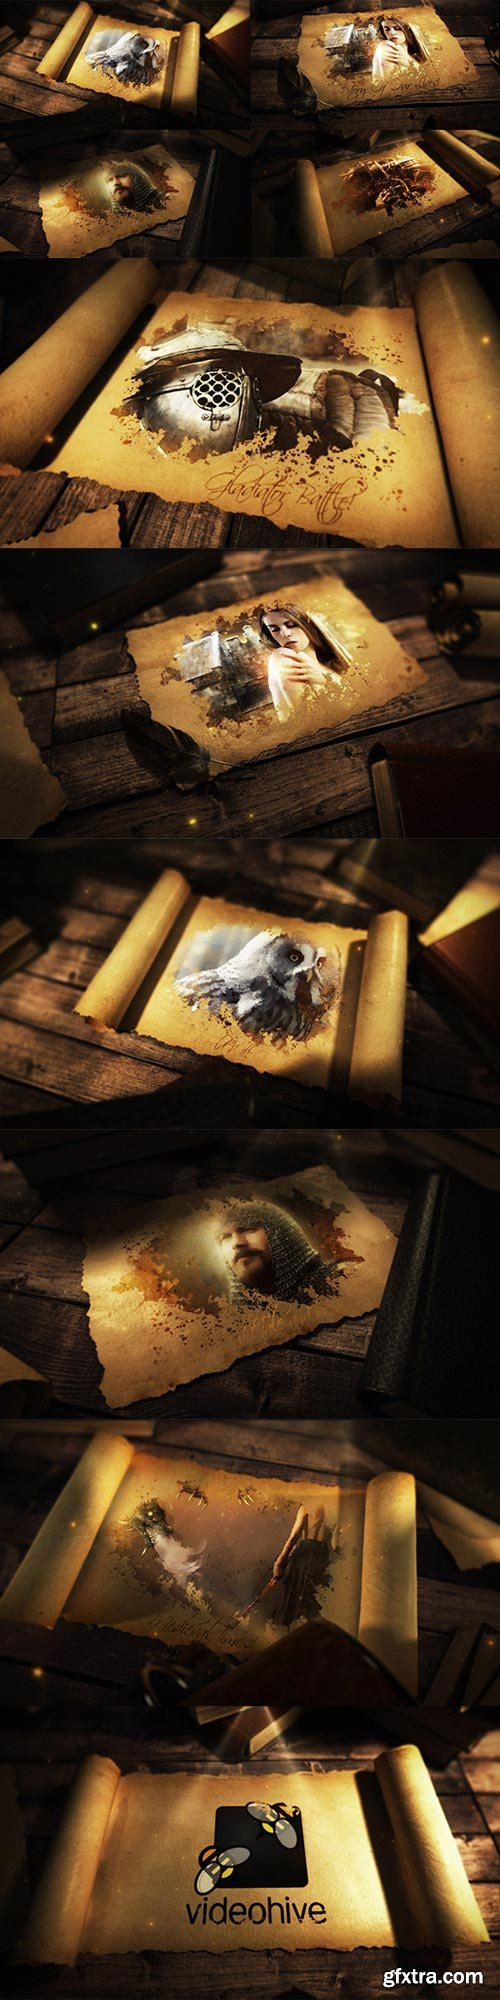 Videohive - Ancient Epic Scroll - 20994228